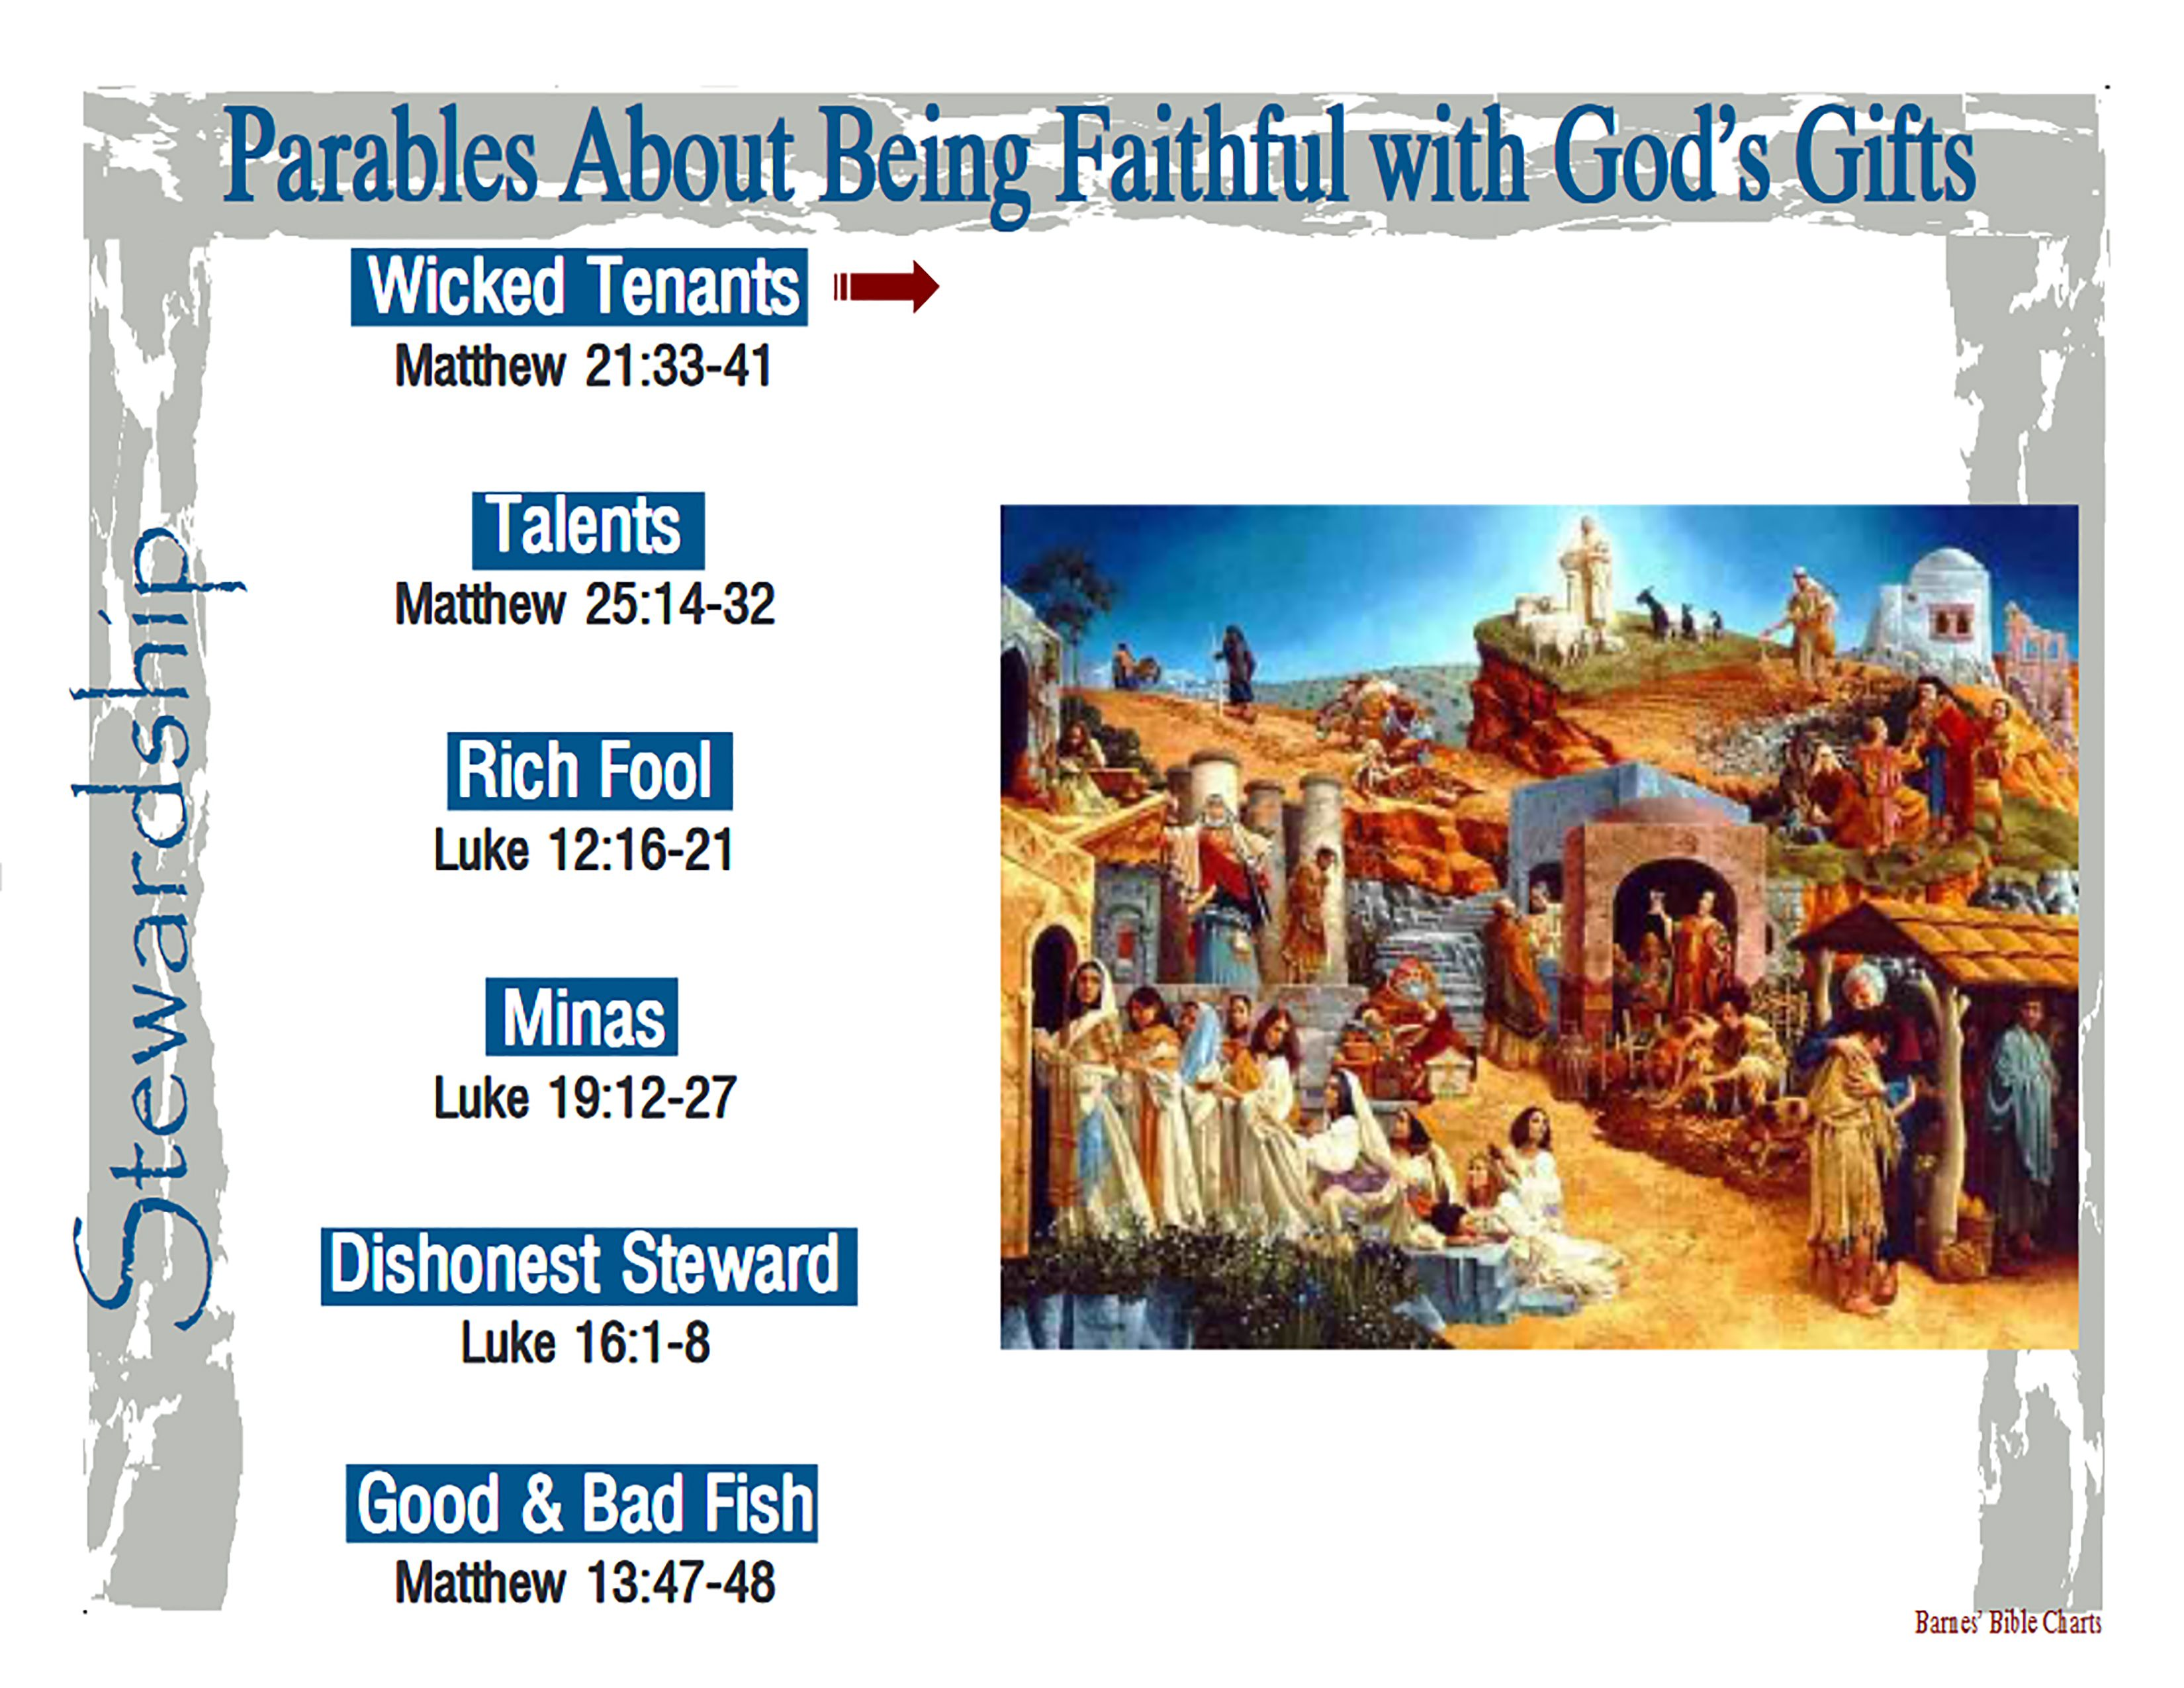 Parables about Being Faithful with God's Gifts in 2020